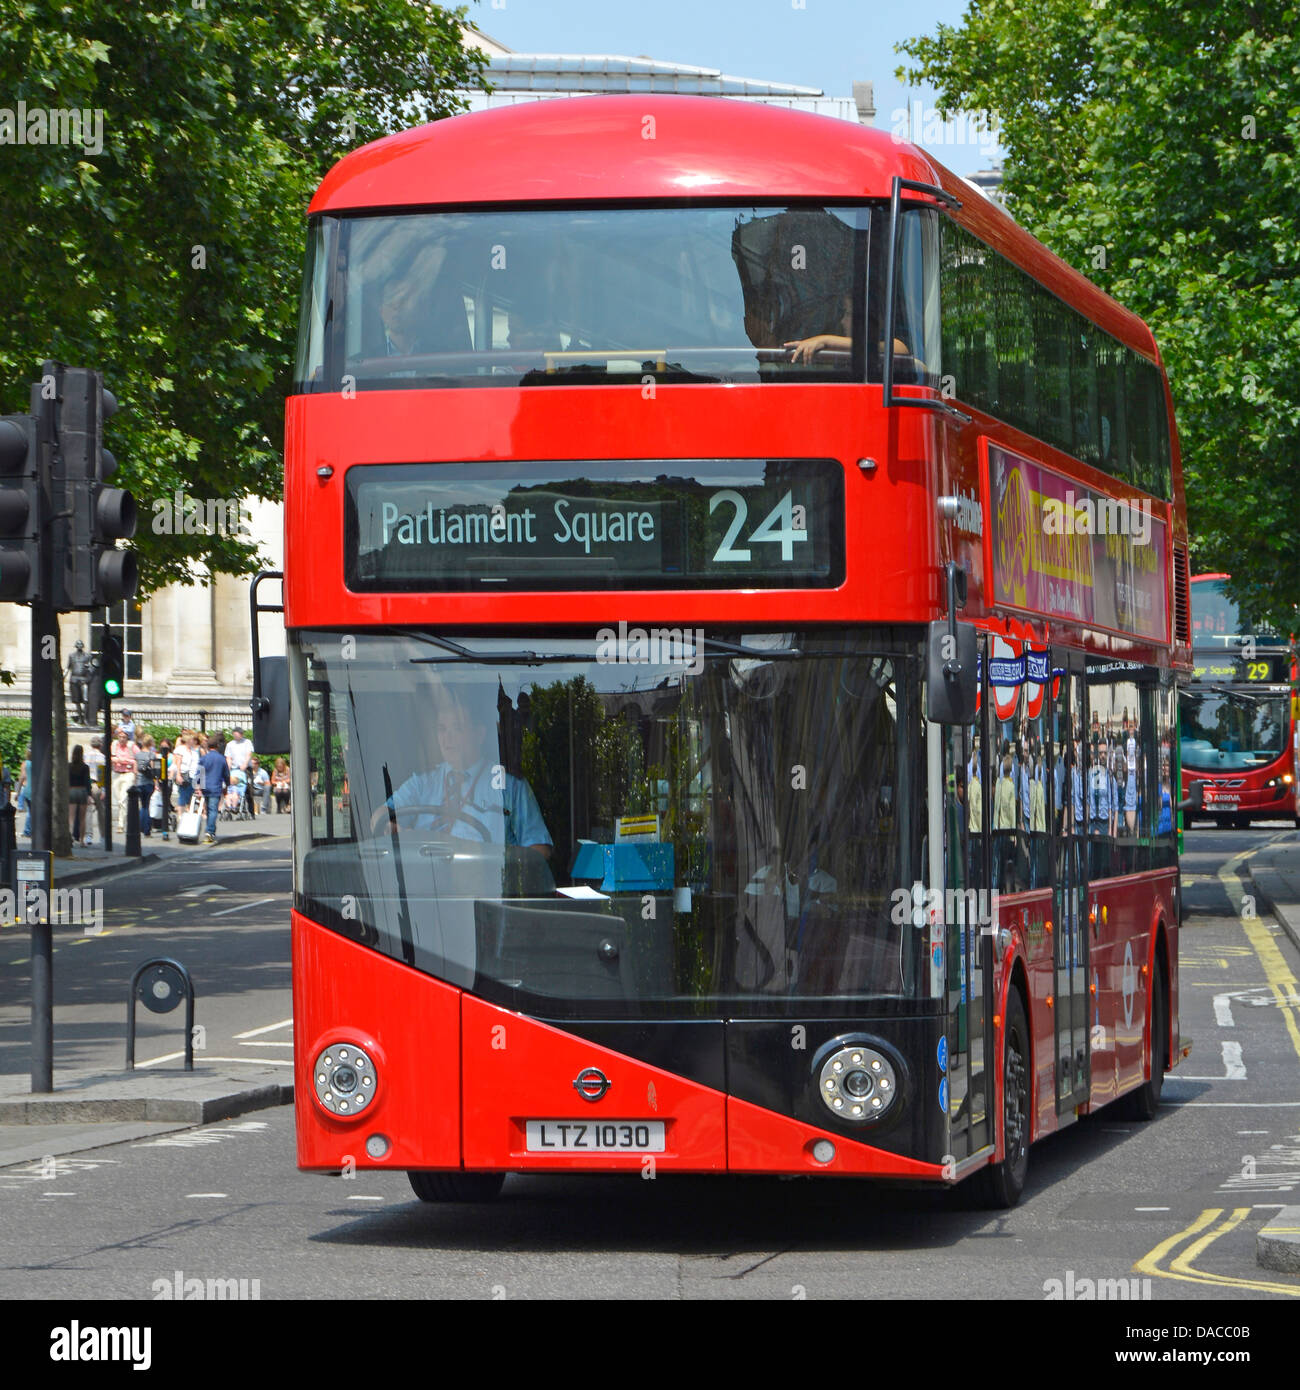 New 2012 London bus variously referred to as a Routemaster or Boris bus on route 24 - Stock Image